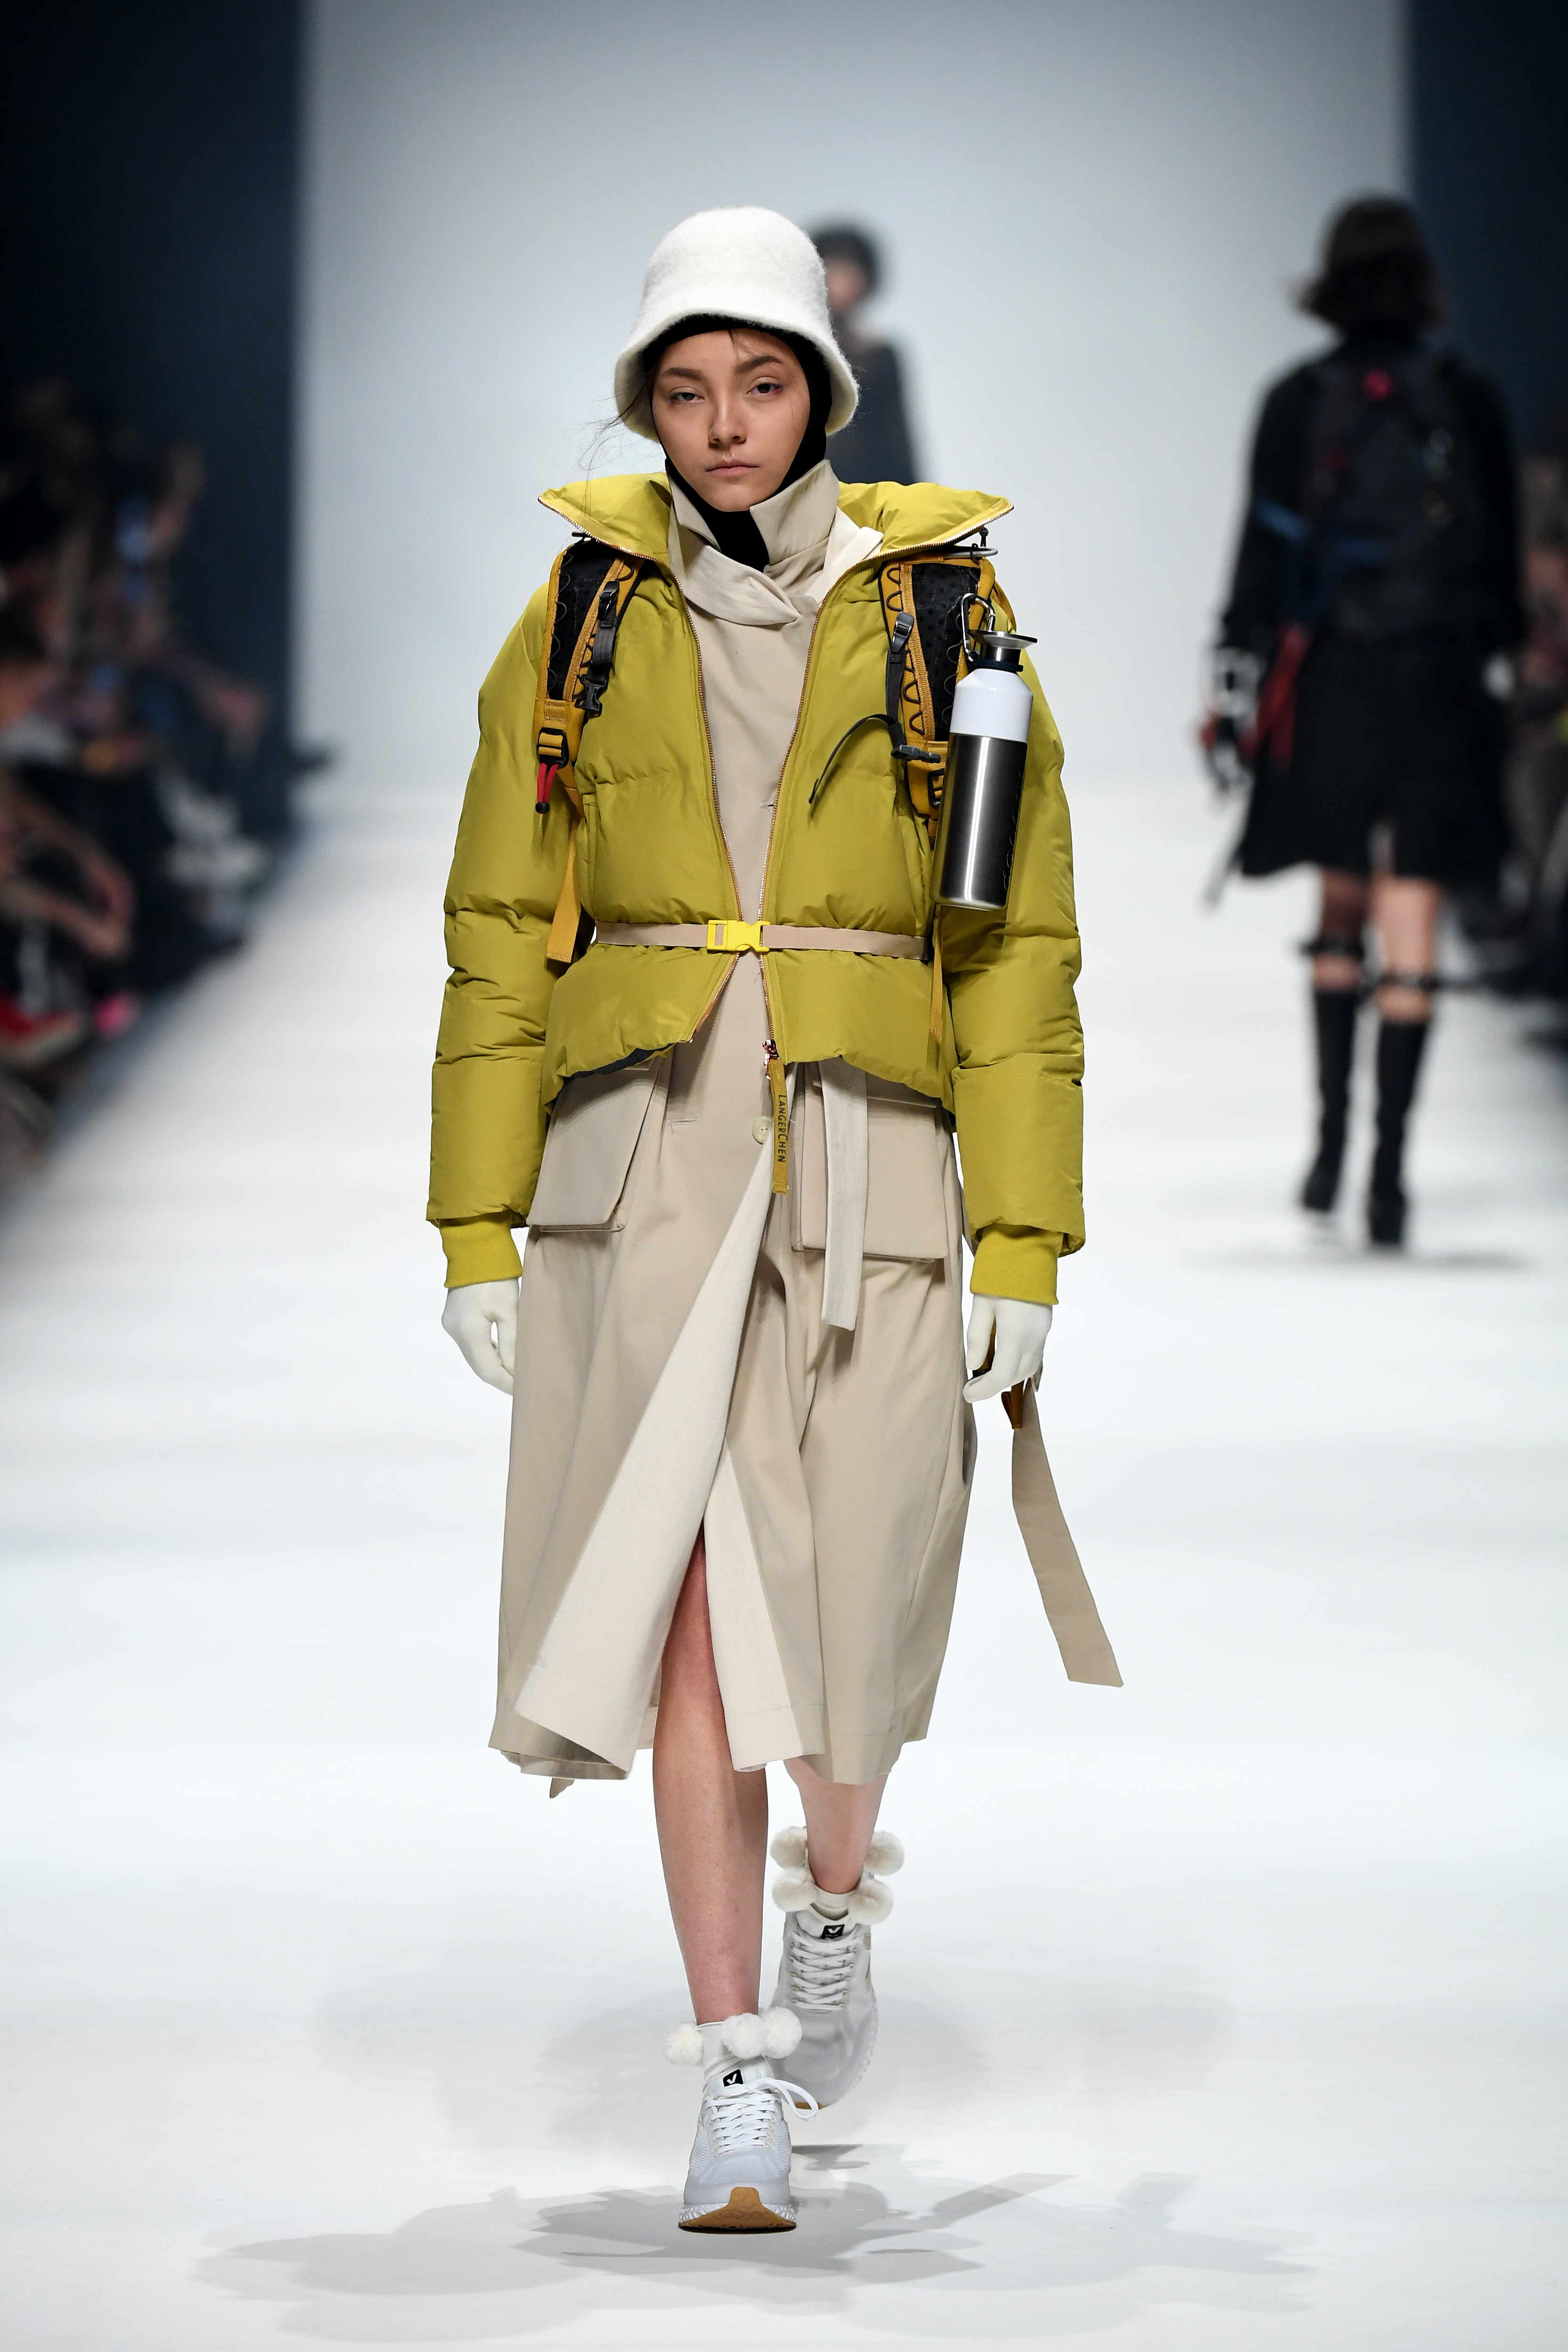 BERLIN, GERMANY - JANUARY 14: A model wearing a jacket by Langer Chen, coat by People Berlin, hood by Falke, hat by Sandermann, socks by Swedish Stockings, belt by People, backpack by Klaettermusen, water bottle by Dopper and shoes by Veja walks the runway at the Neonyt show during Berlin Fashion Week Autumn/Winter 2020 at Kraftwerk Mitte on January 14, 2020 in Berlin, Germany. (Photo by John Phillips/Getty Images for MBFW)